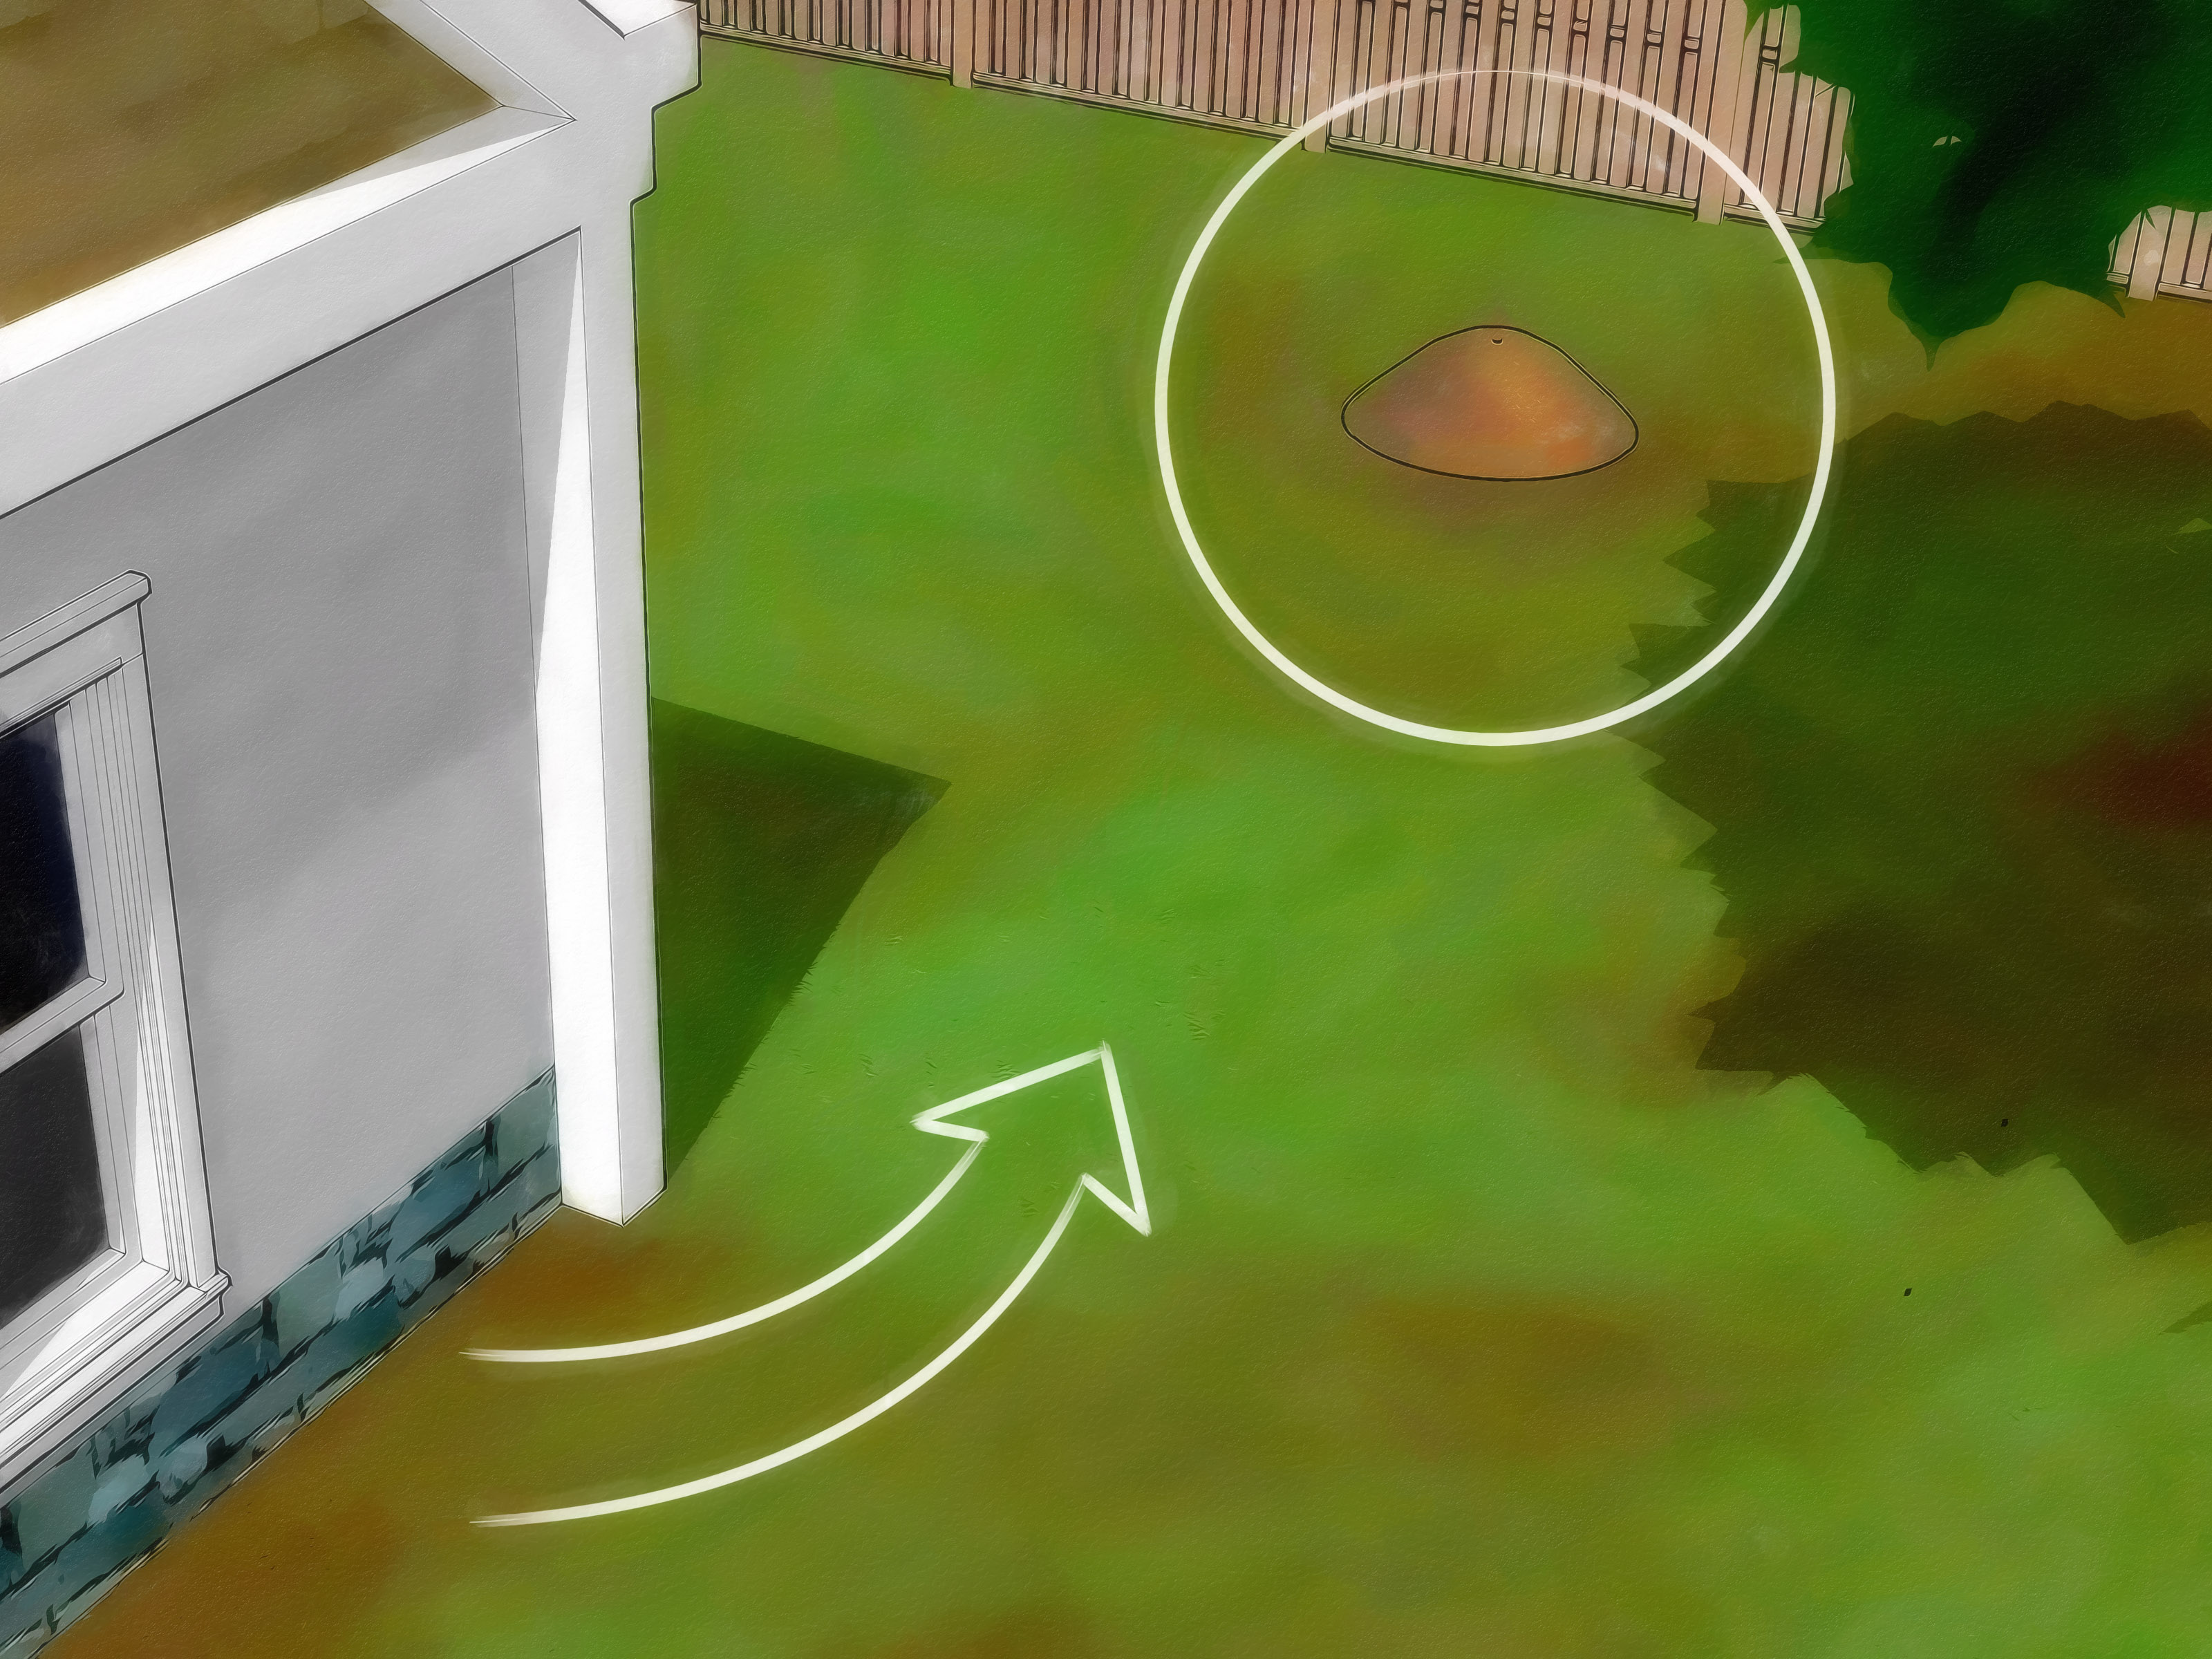 Tremendous Ways To S Ants From Coming Into Your Home Wikihow Does Diatomaceous Earth Kill Carpenter Ants Does Diatomaceous Earth Kill Ants houzz-03 Does Diatomaceous Earth Kill Ants